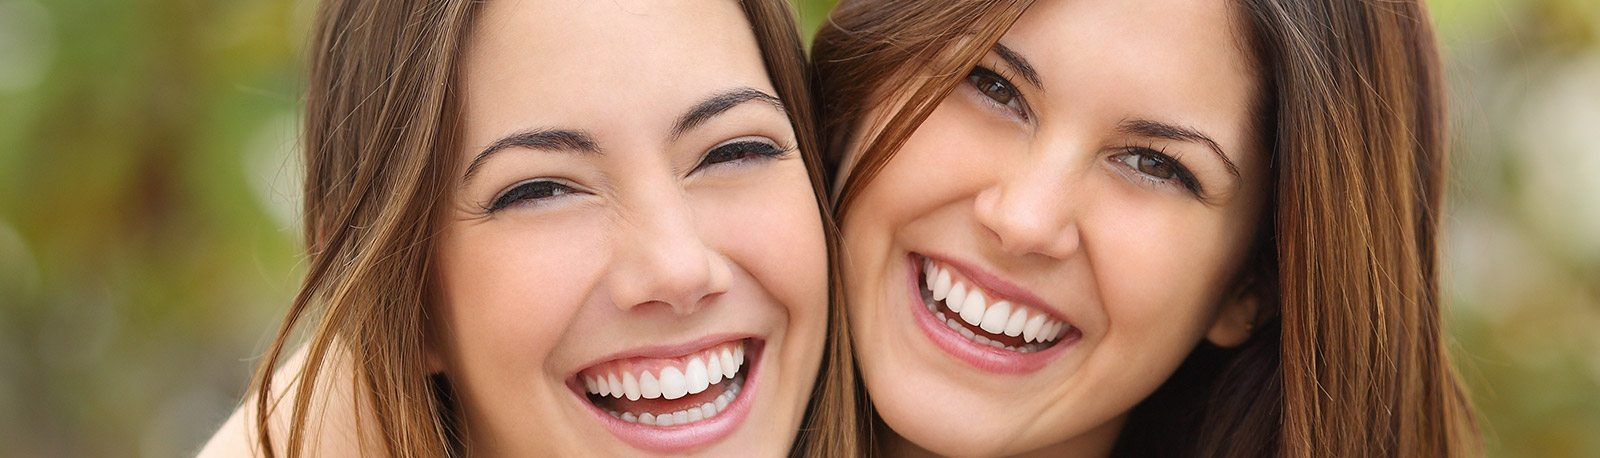 Girls with beautiful smile